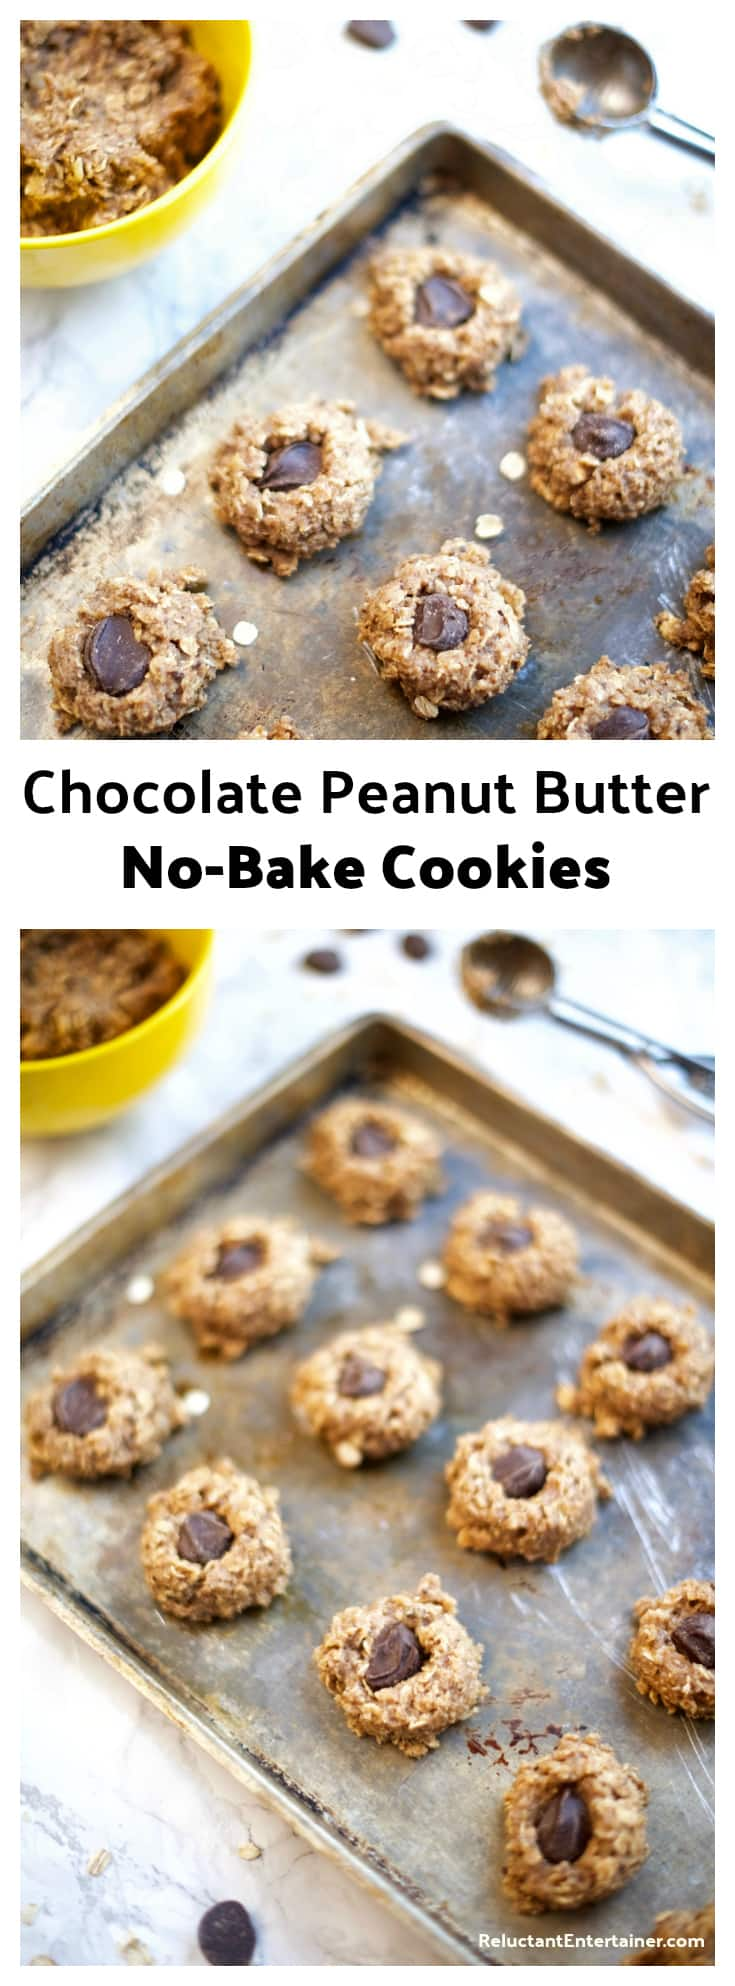 Chocolate Peanut Butter No-Bake Cookies Recipe